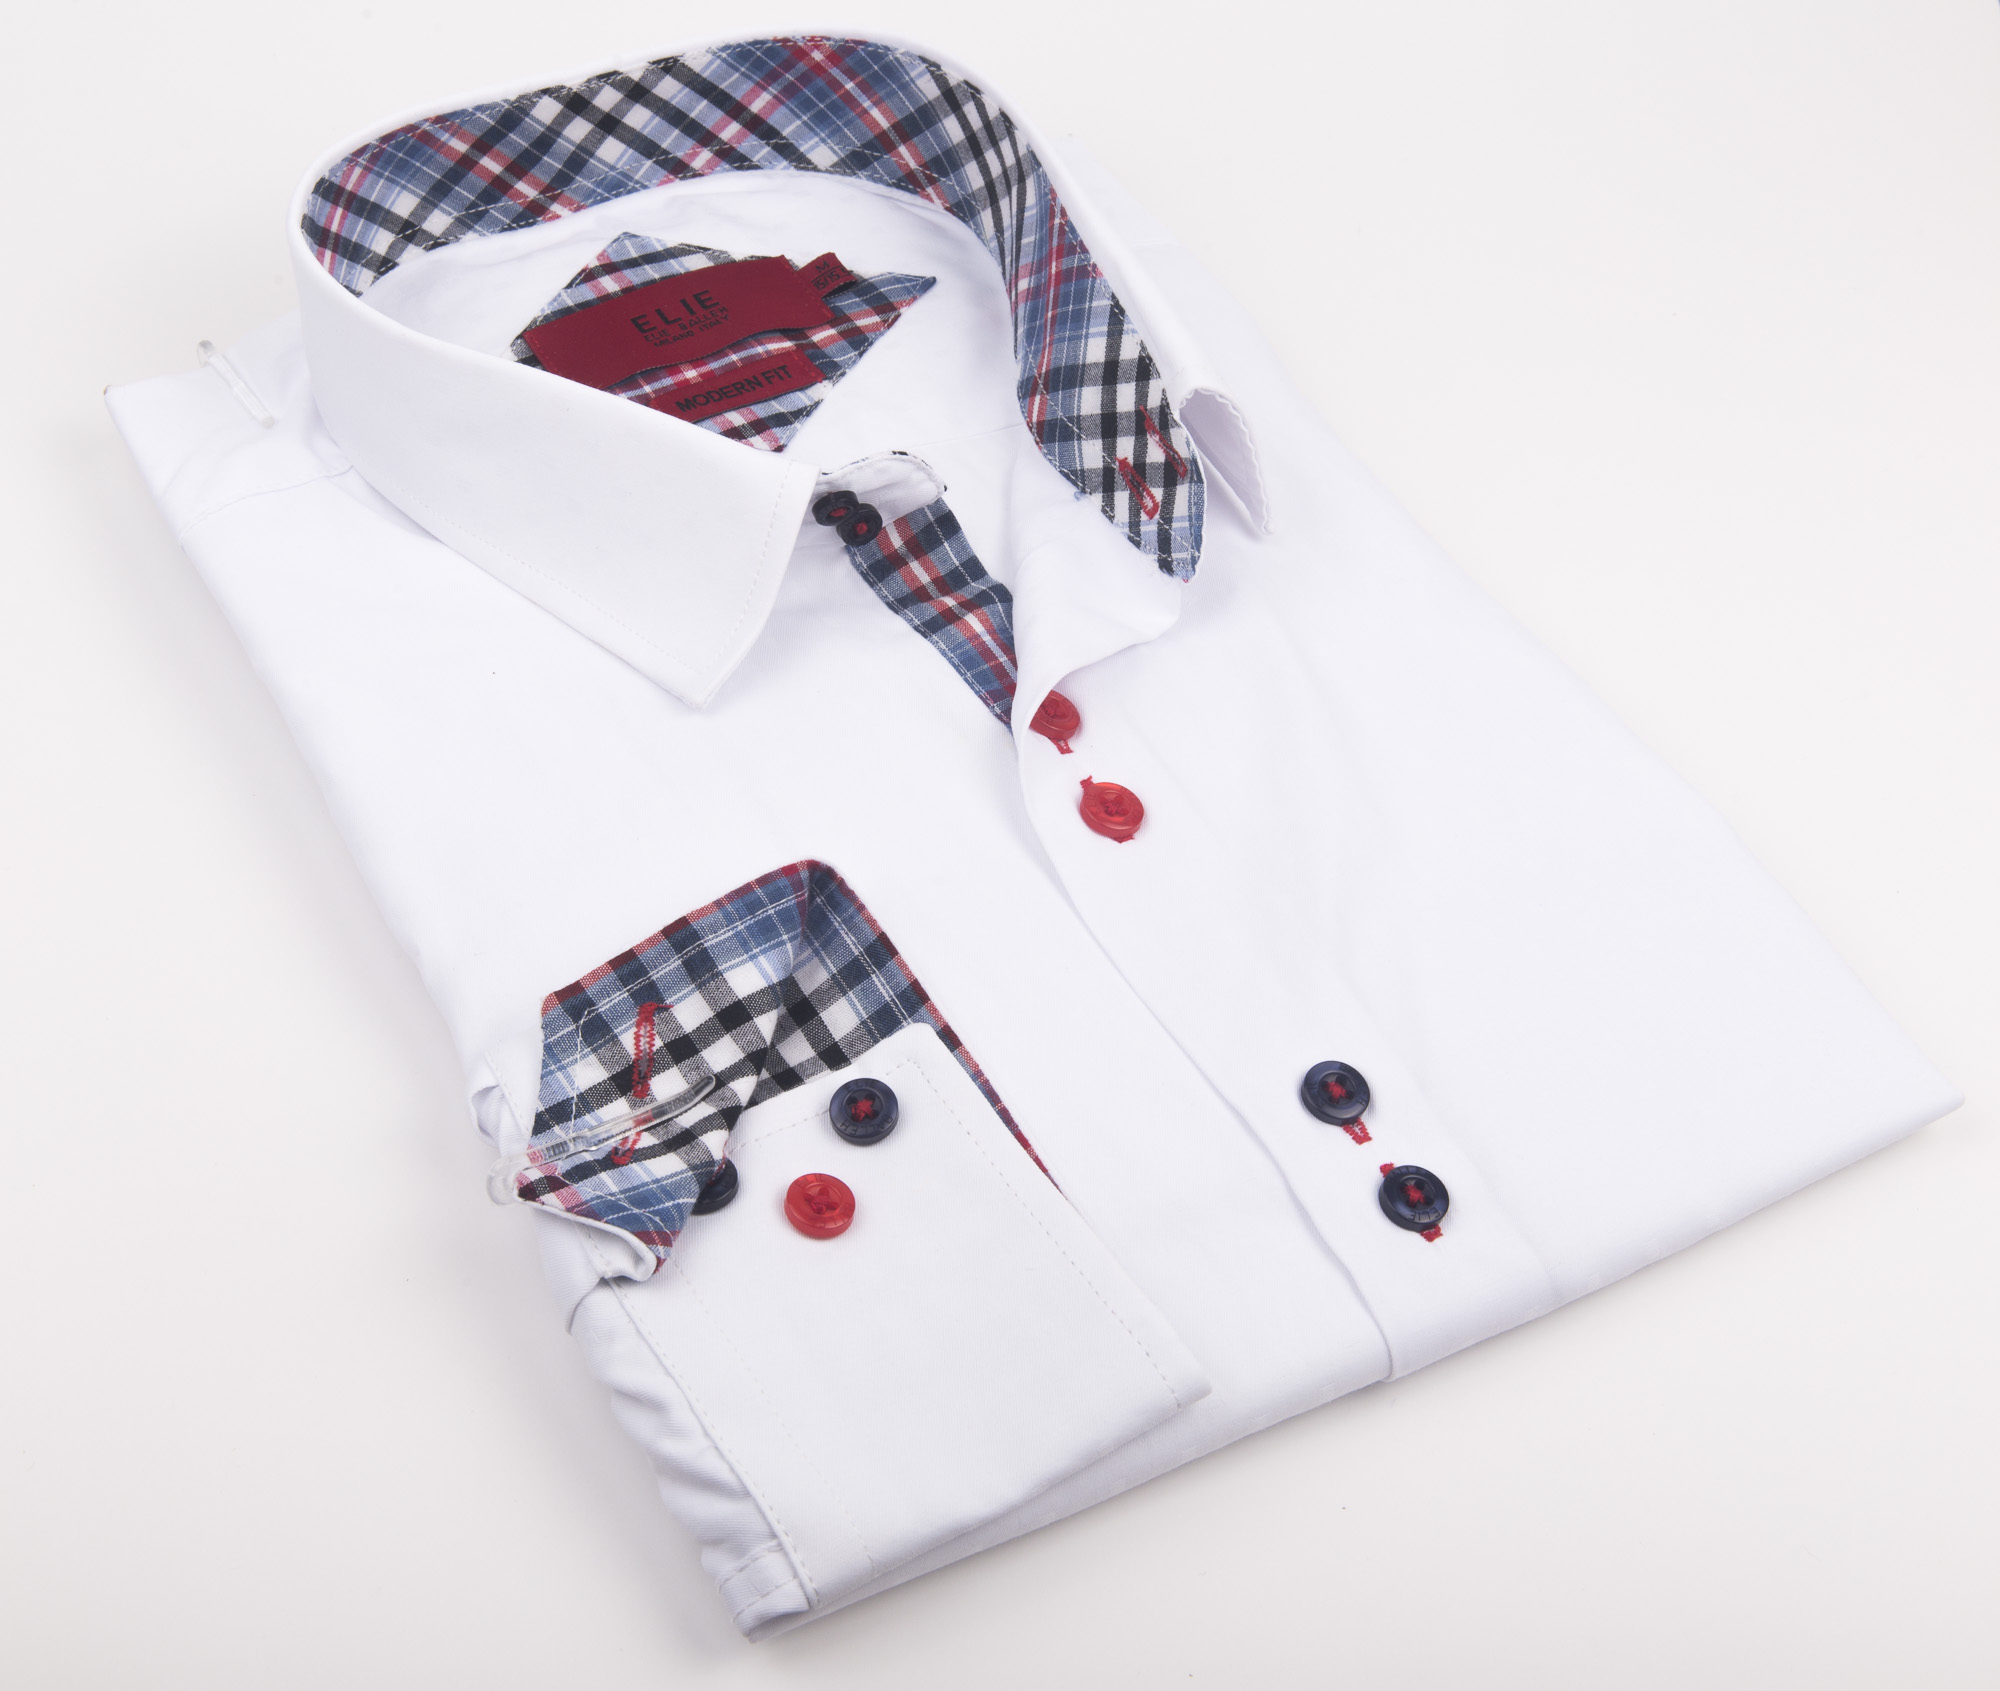 Solid Textured premium Boys Shirts / Button Down EBSH172B